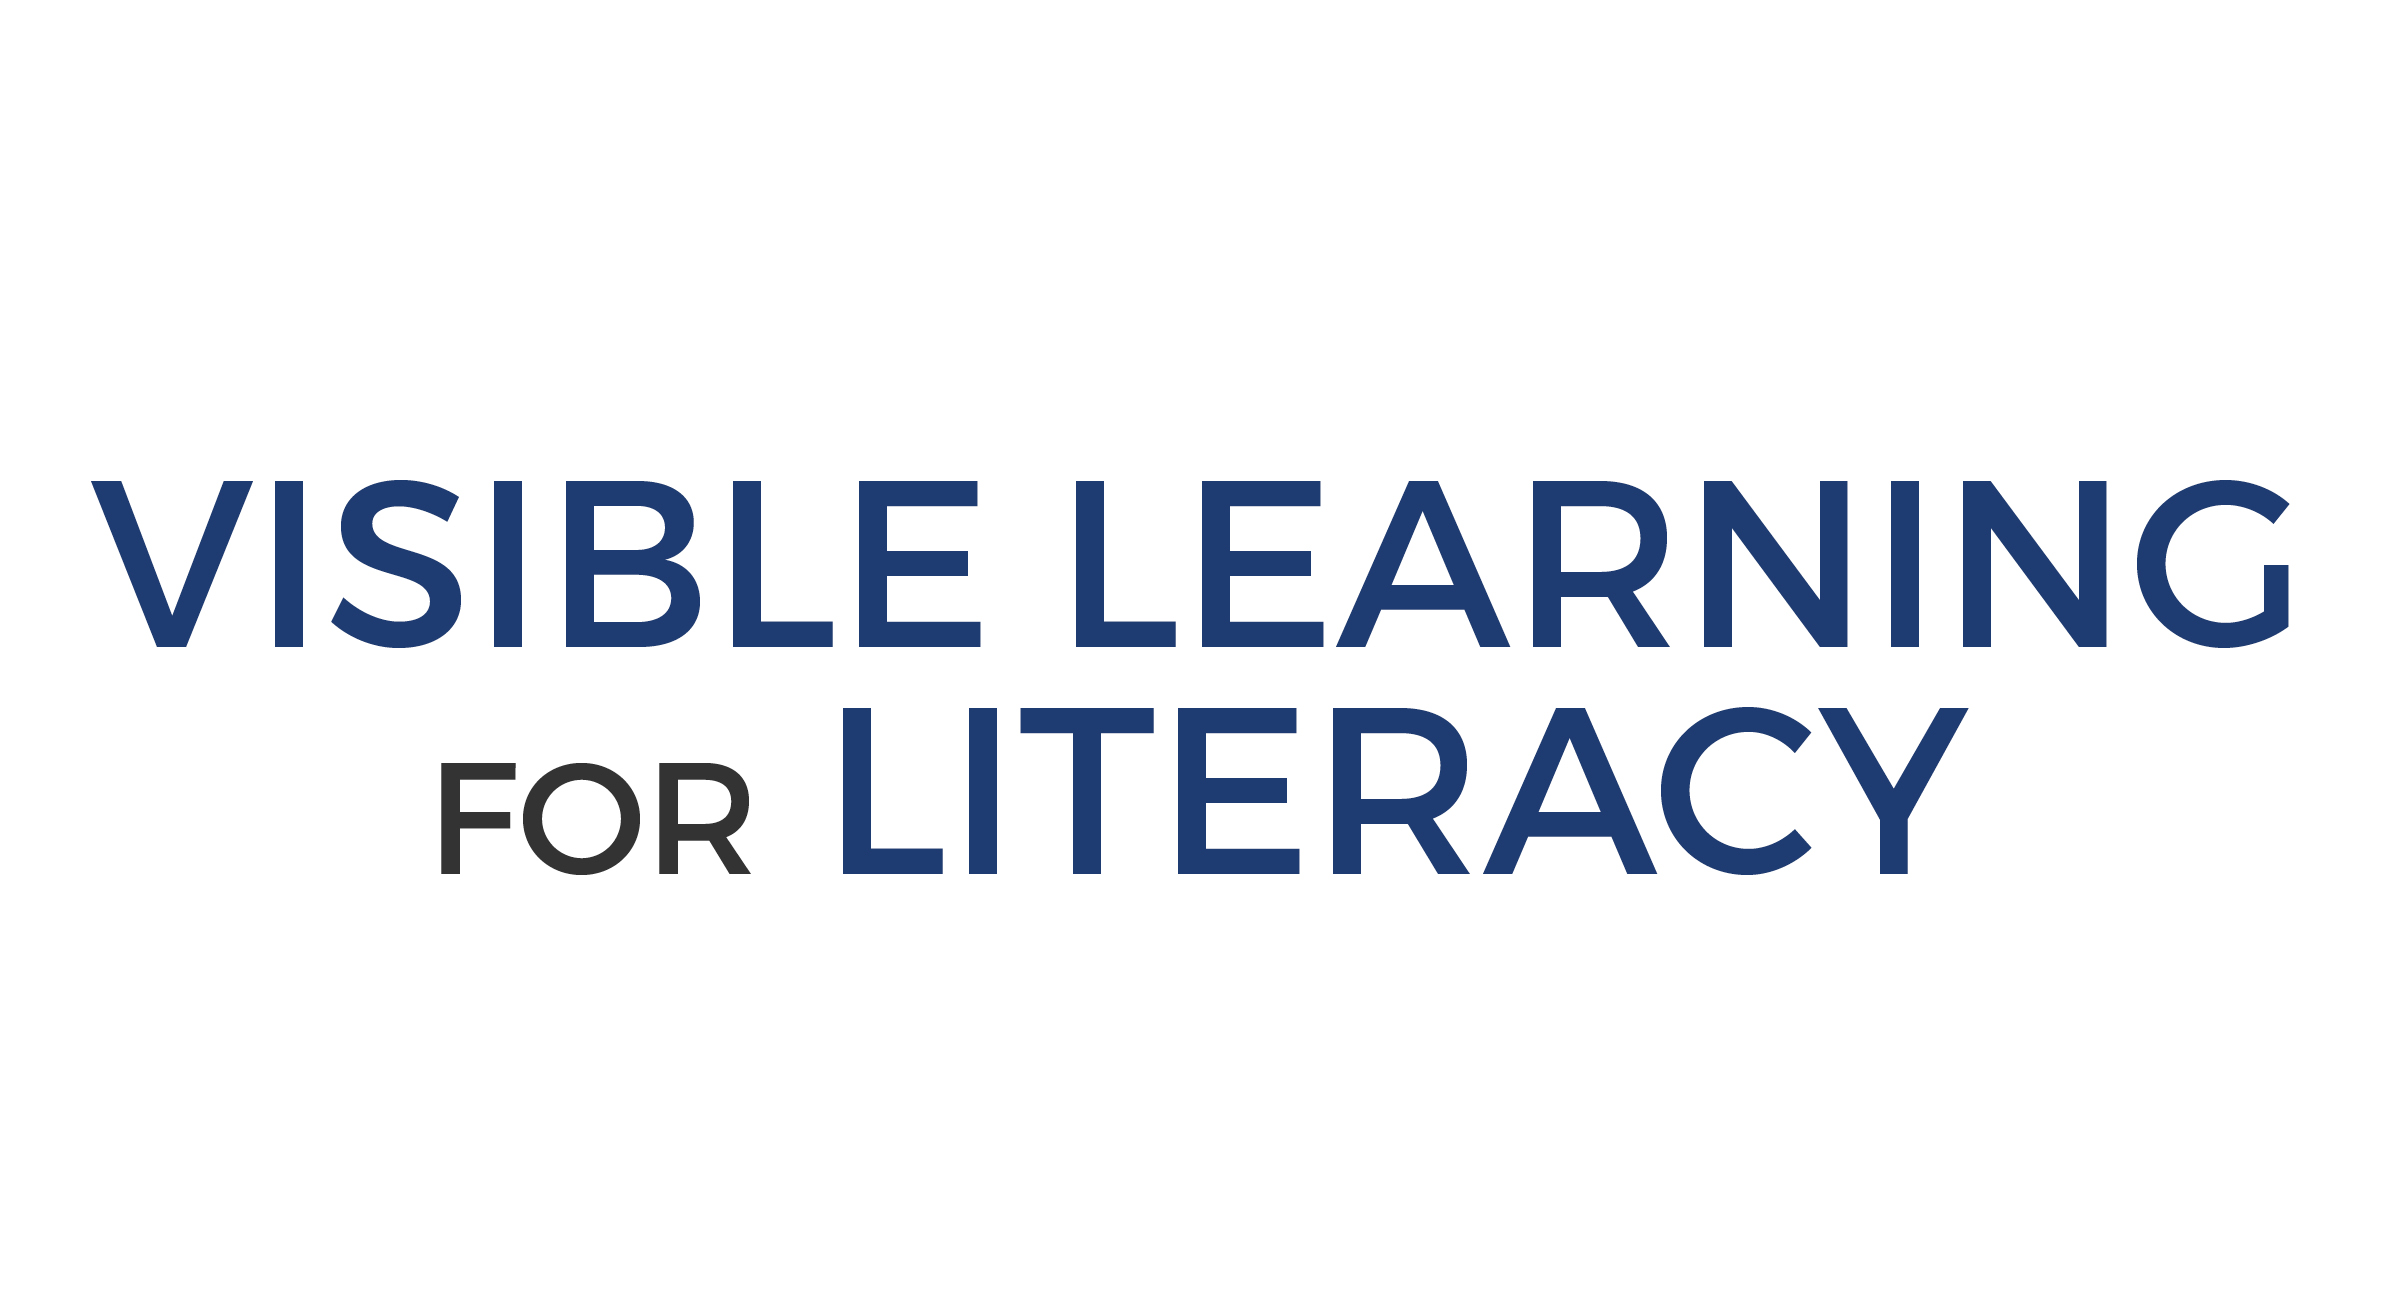 VISIBLE LEARNING FOR LITERACY: Brisbane